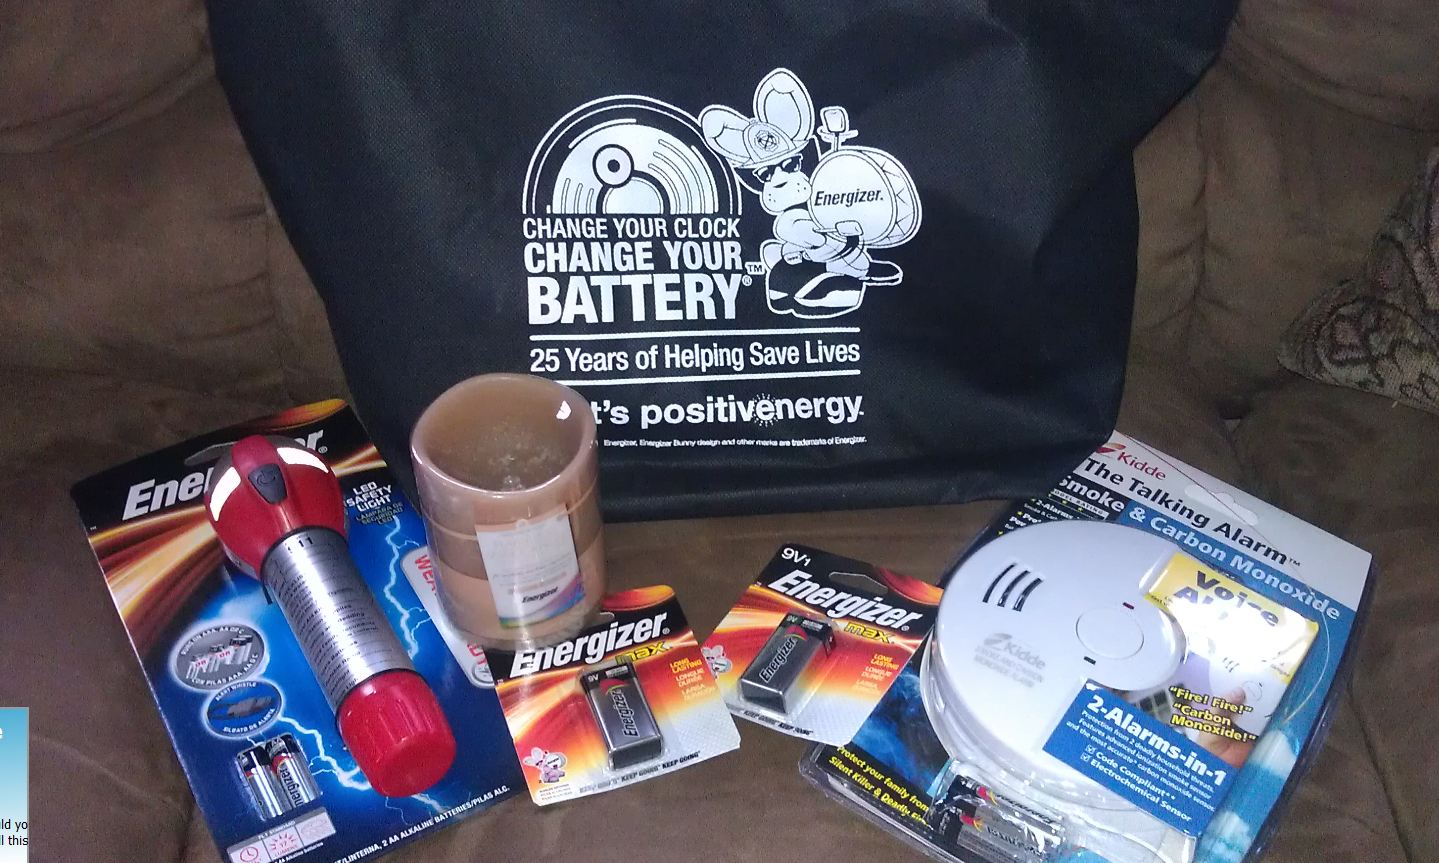 Winner, Winner, WINesday #2: Energizer Change Your Clock Change Your Batteries Giveaway Package!